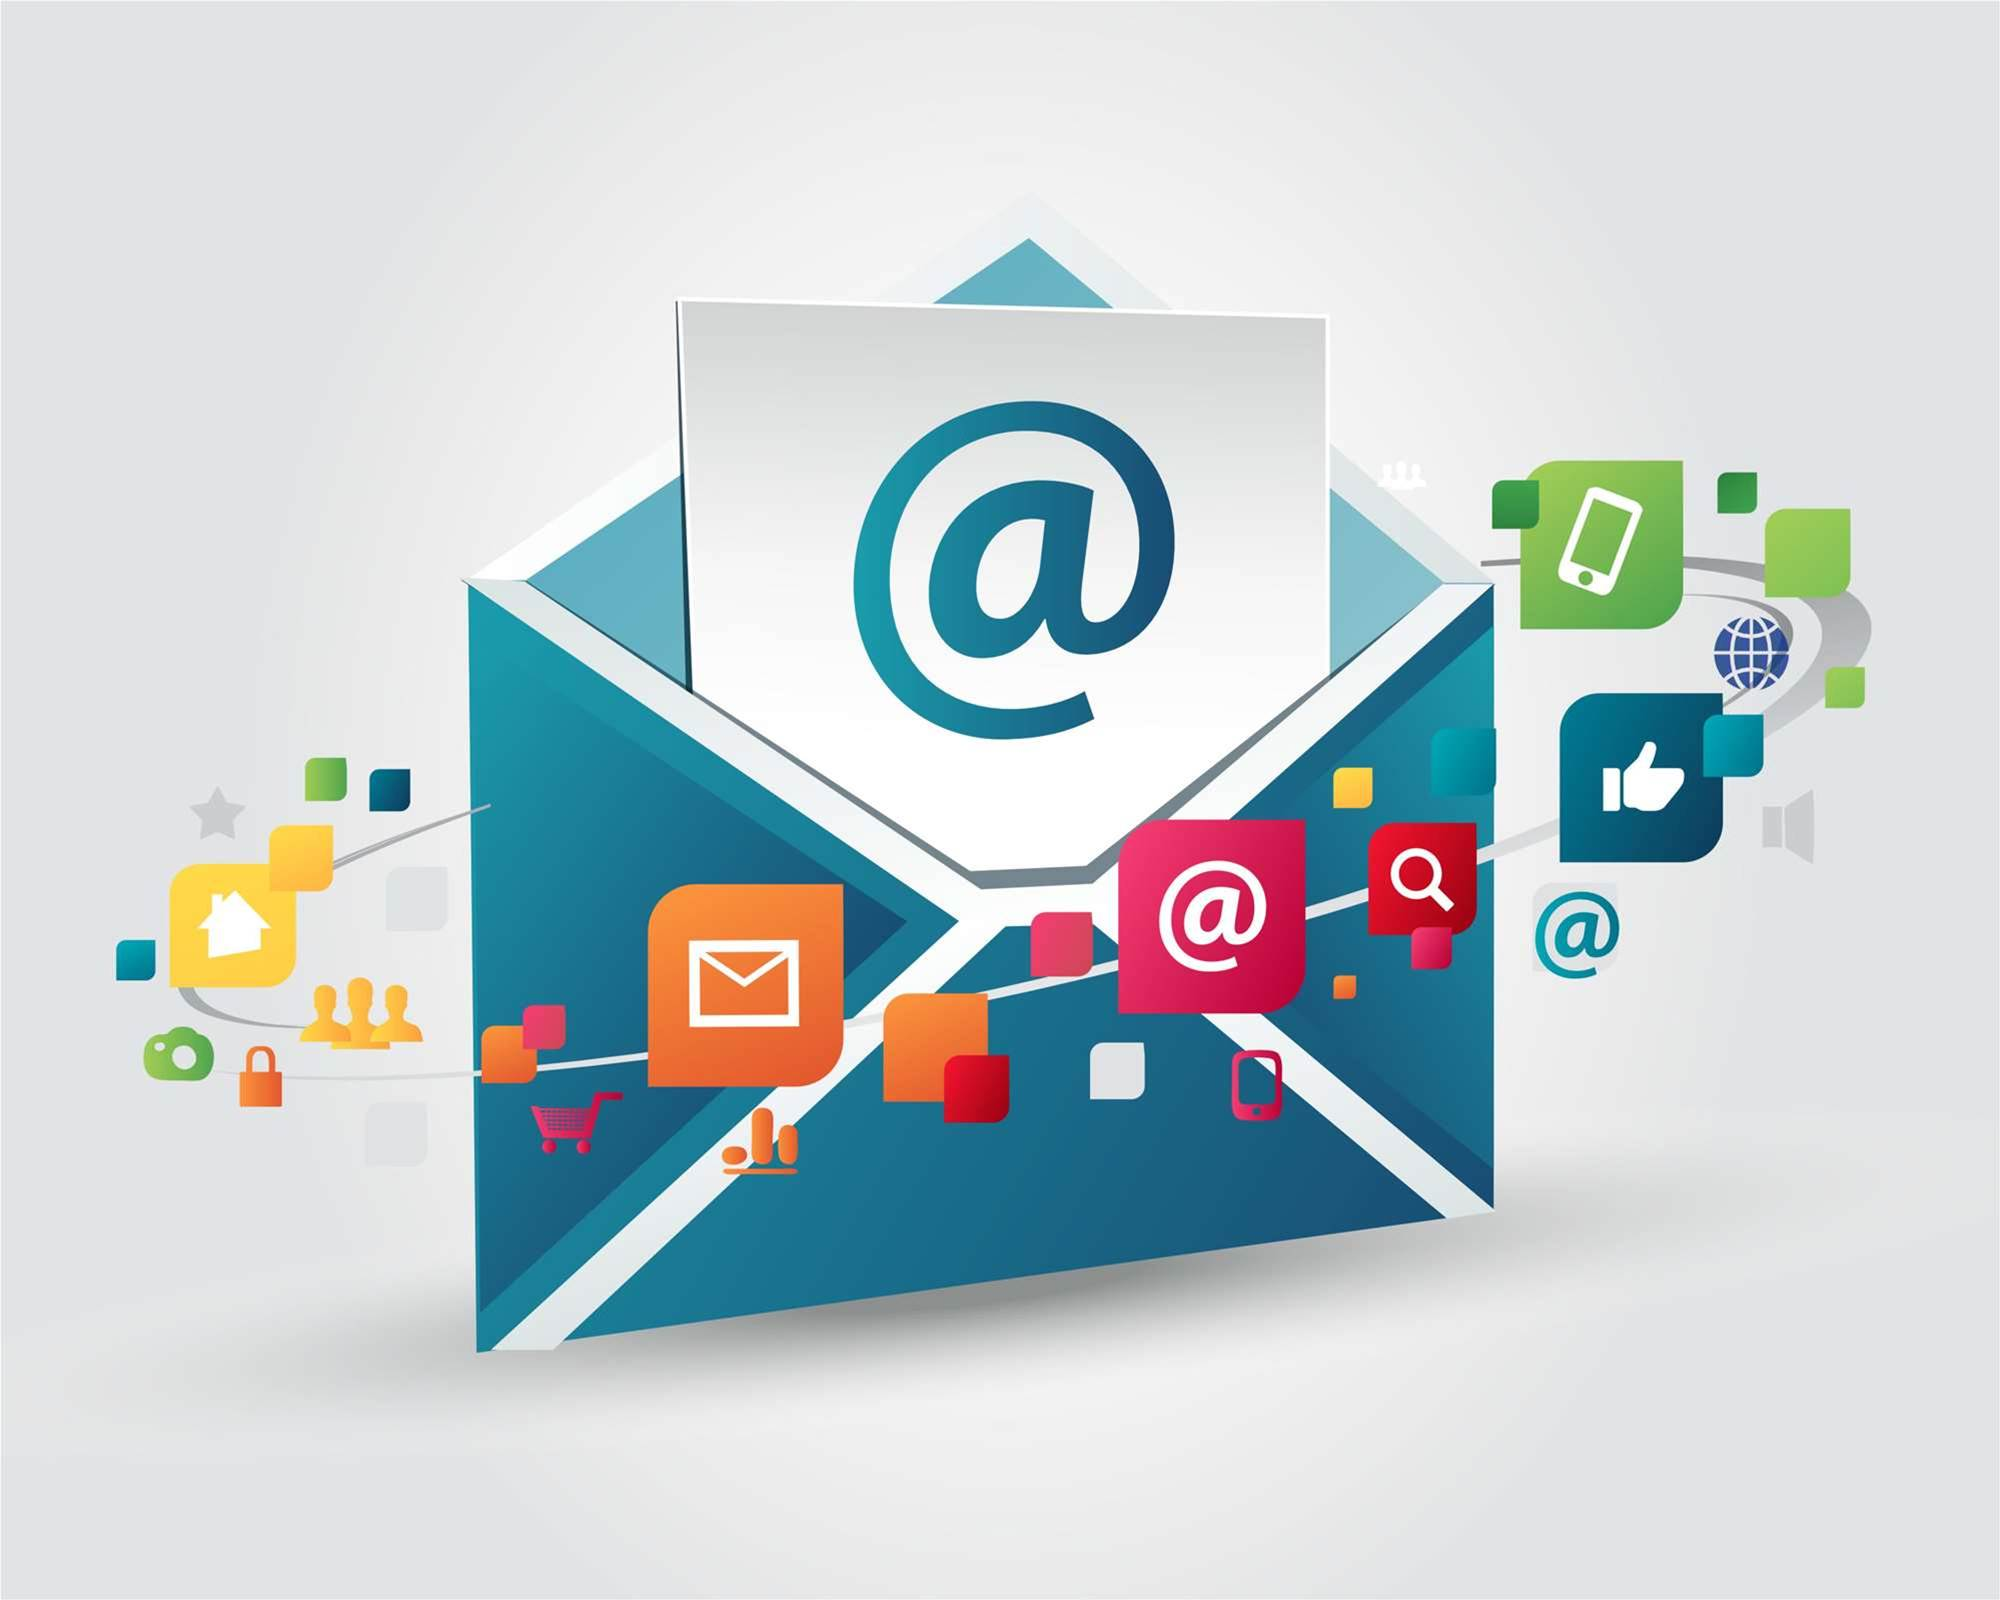 More reasons to use email marketing